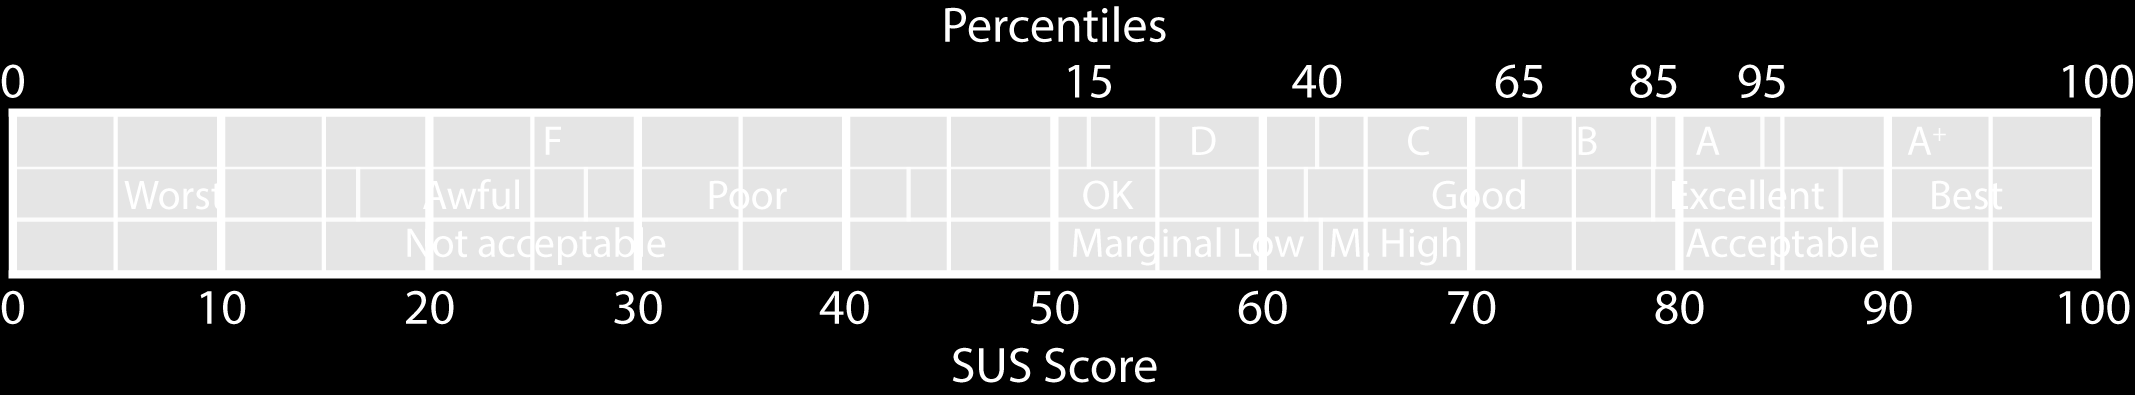 Figure 1. Adjective-based Ratings to Help Interpret SUS Scores learned from the study that could assist the design of PGPbased secure email tools.